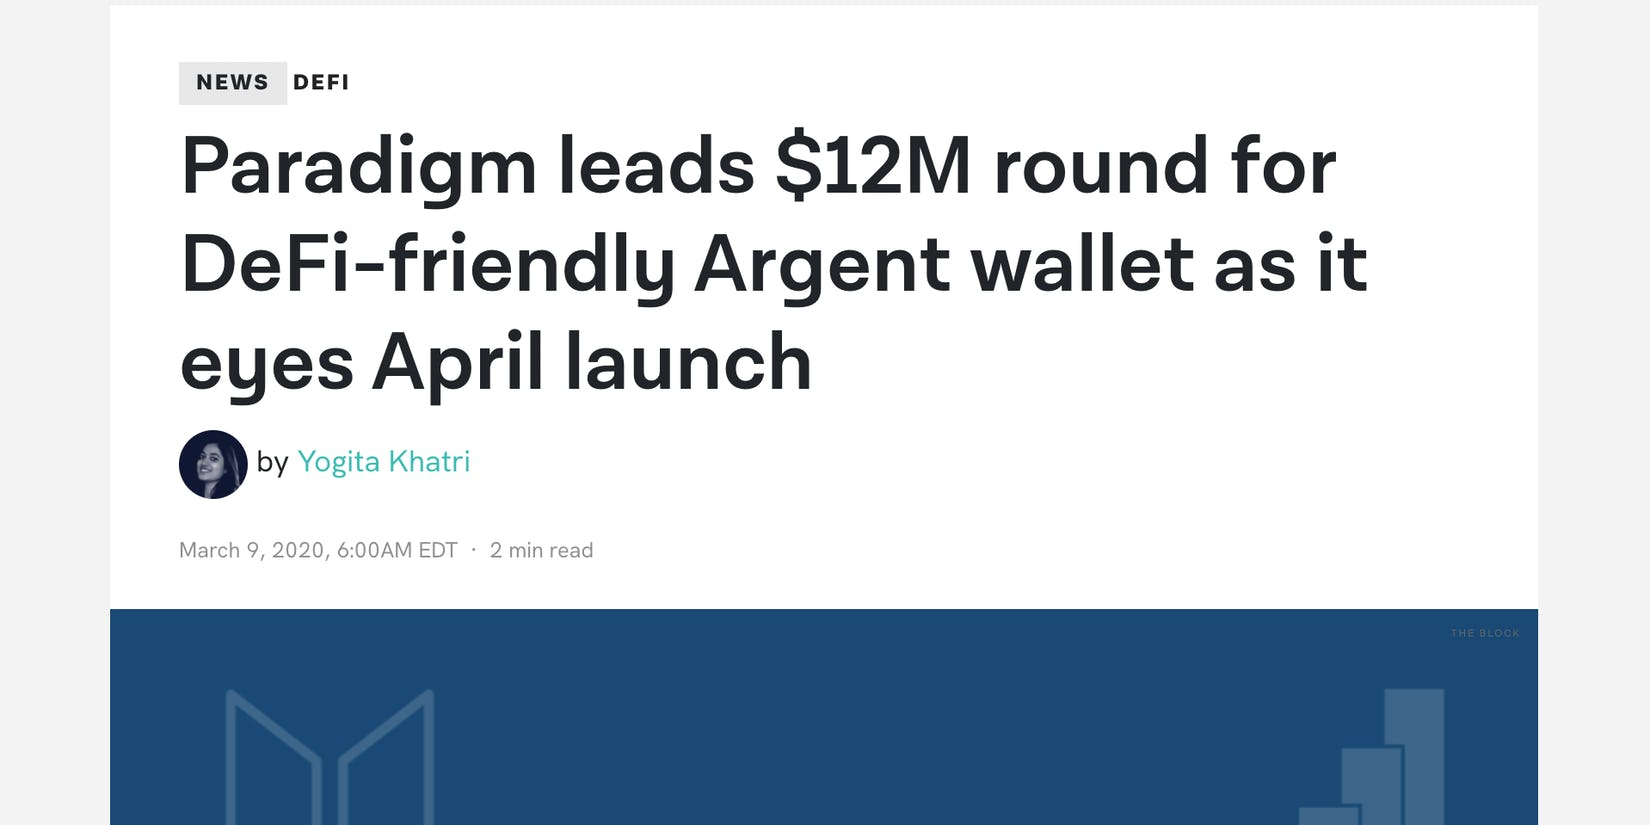 The Block covers Argent wallet's Series A led by Paradigm